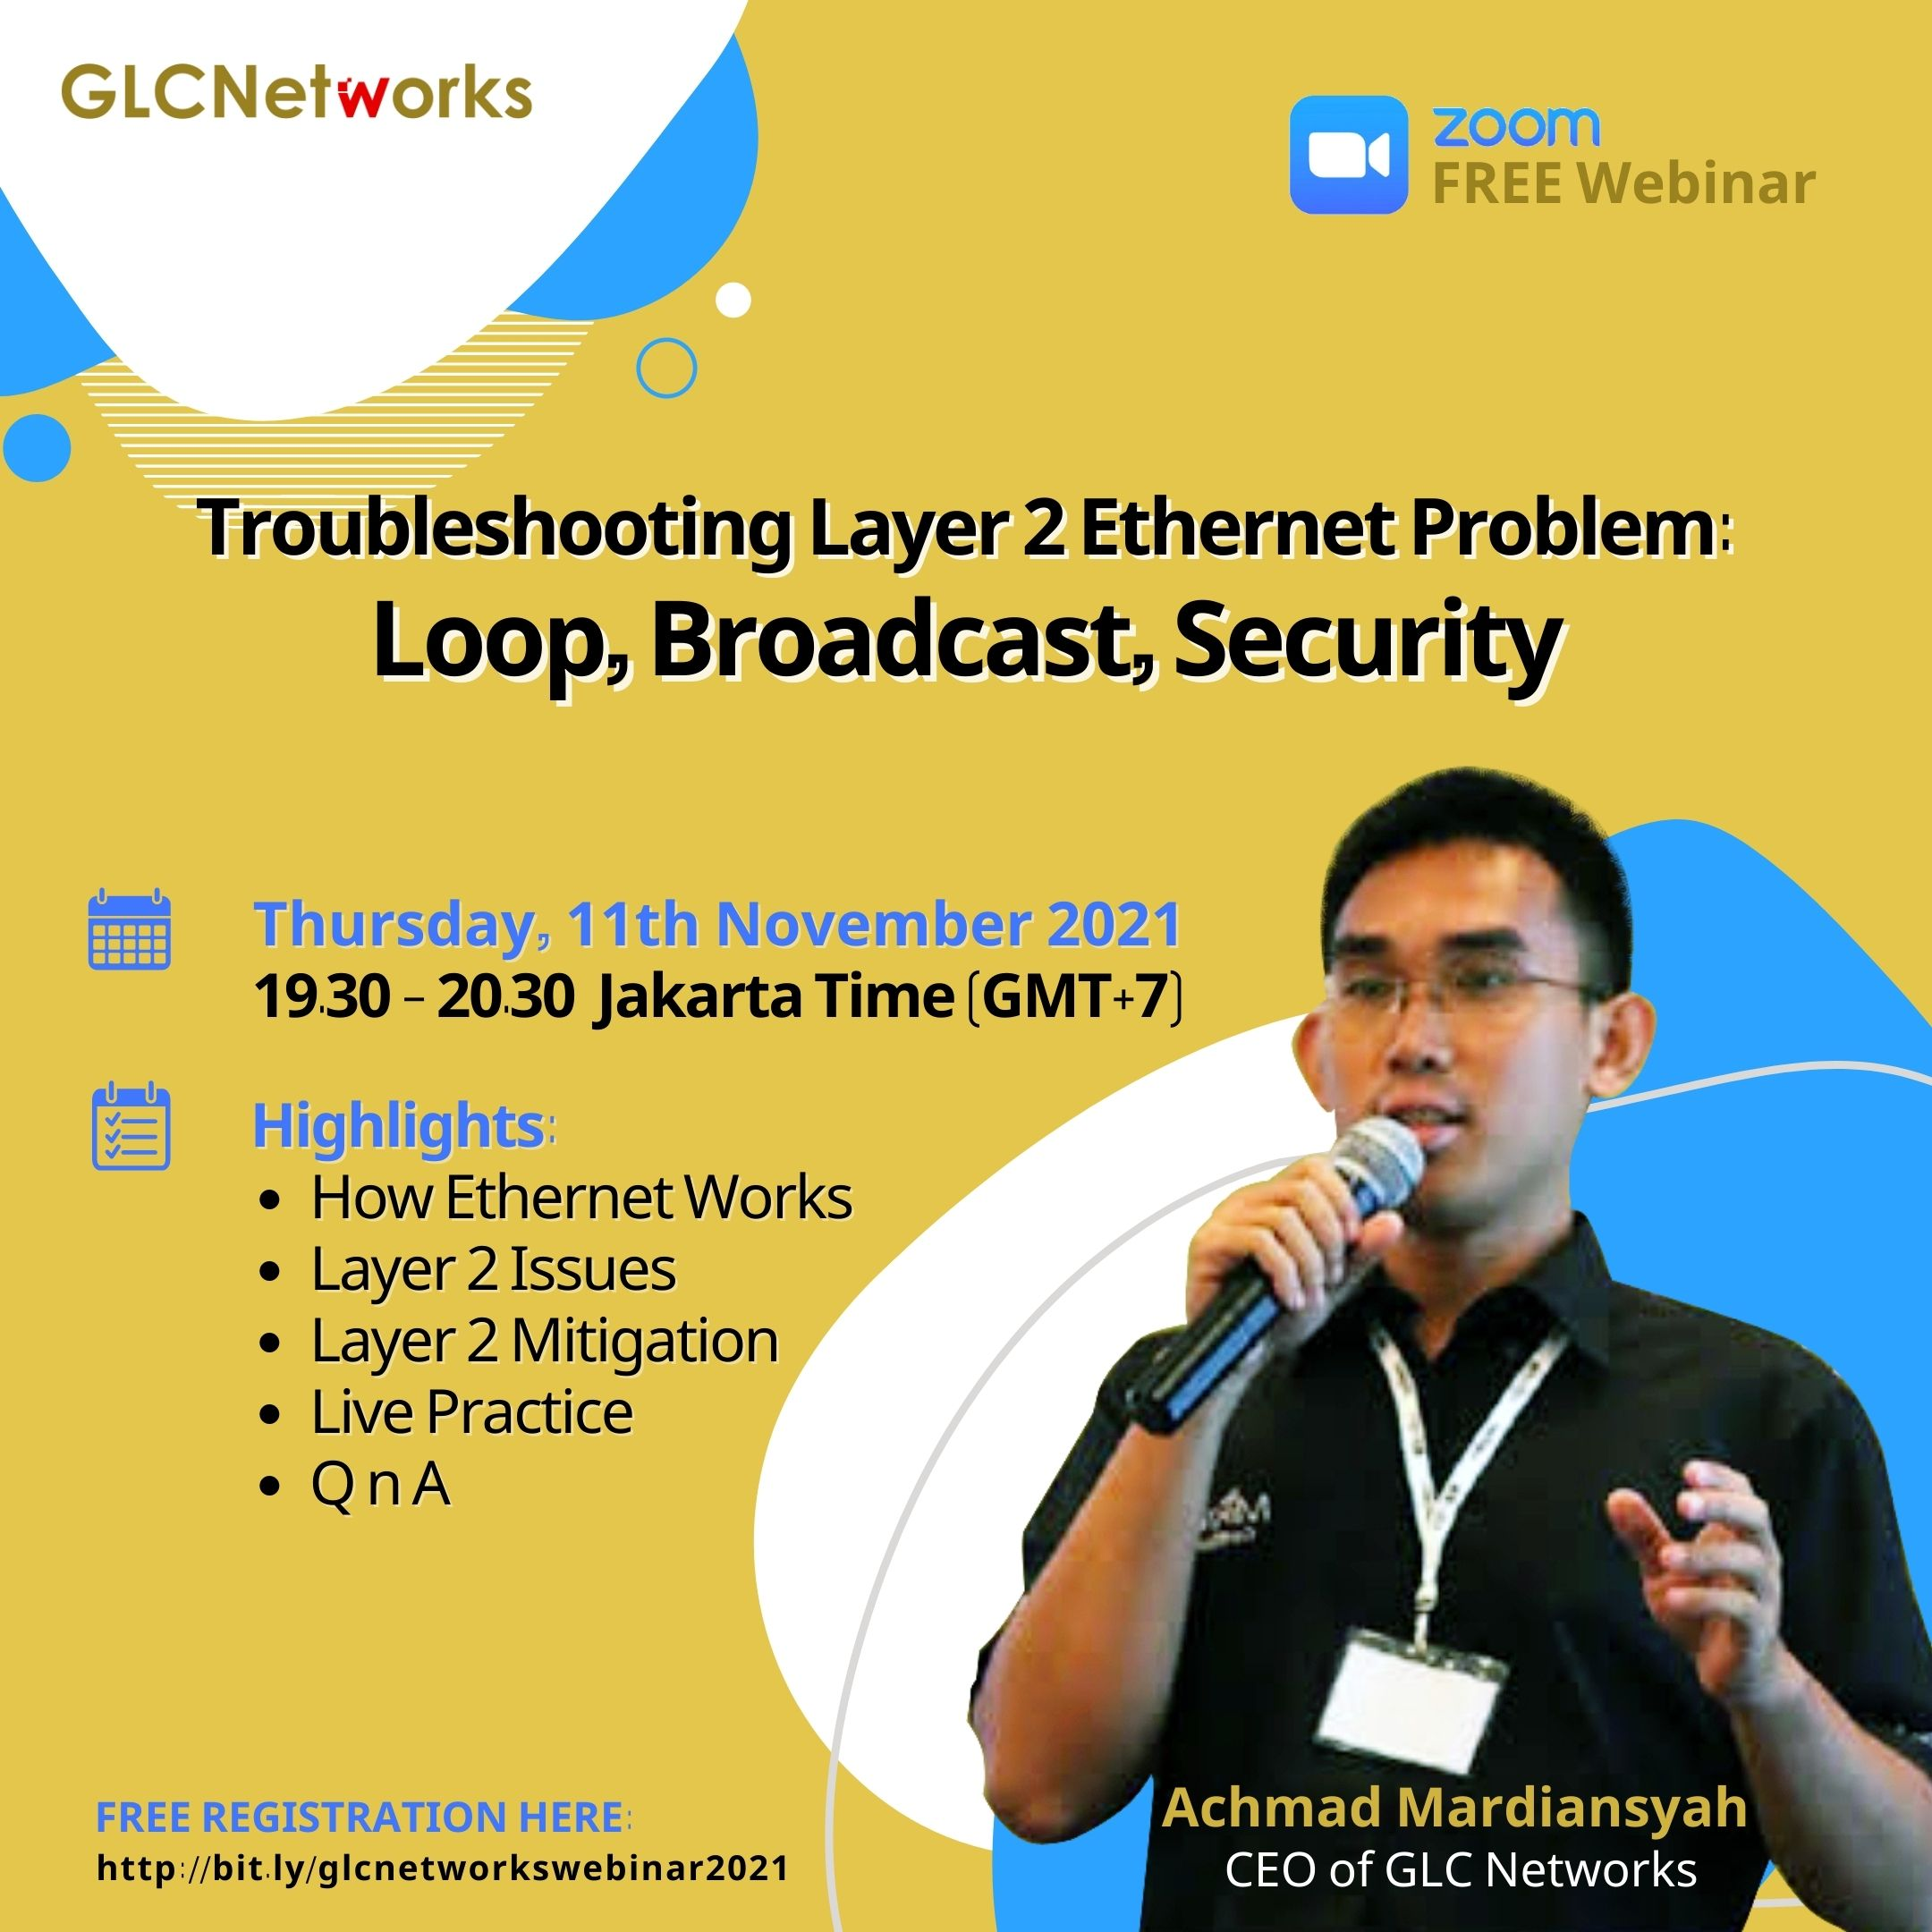 Troubleshooting Layer 2 Ethernet Problem_Loop, Broadcast, Security